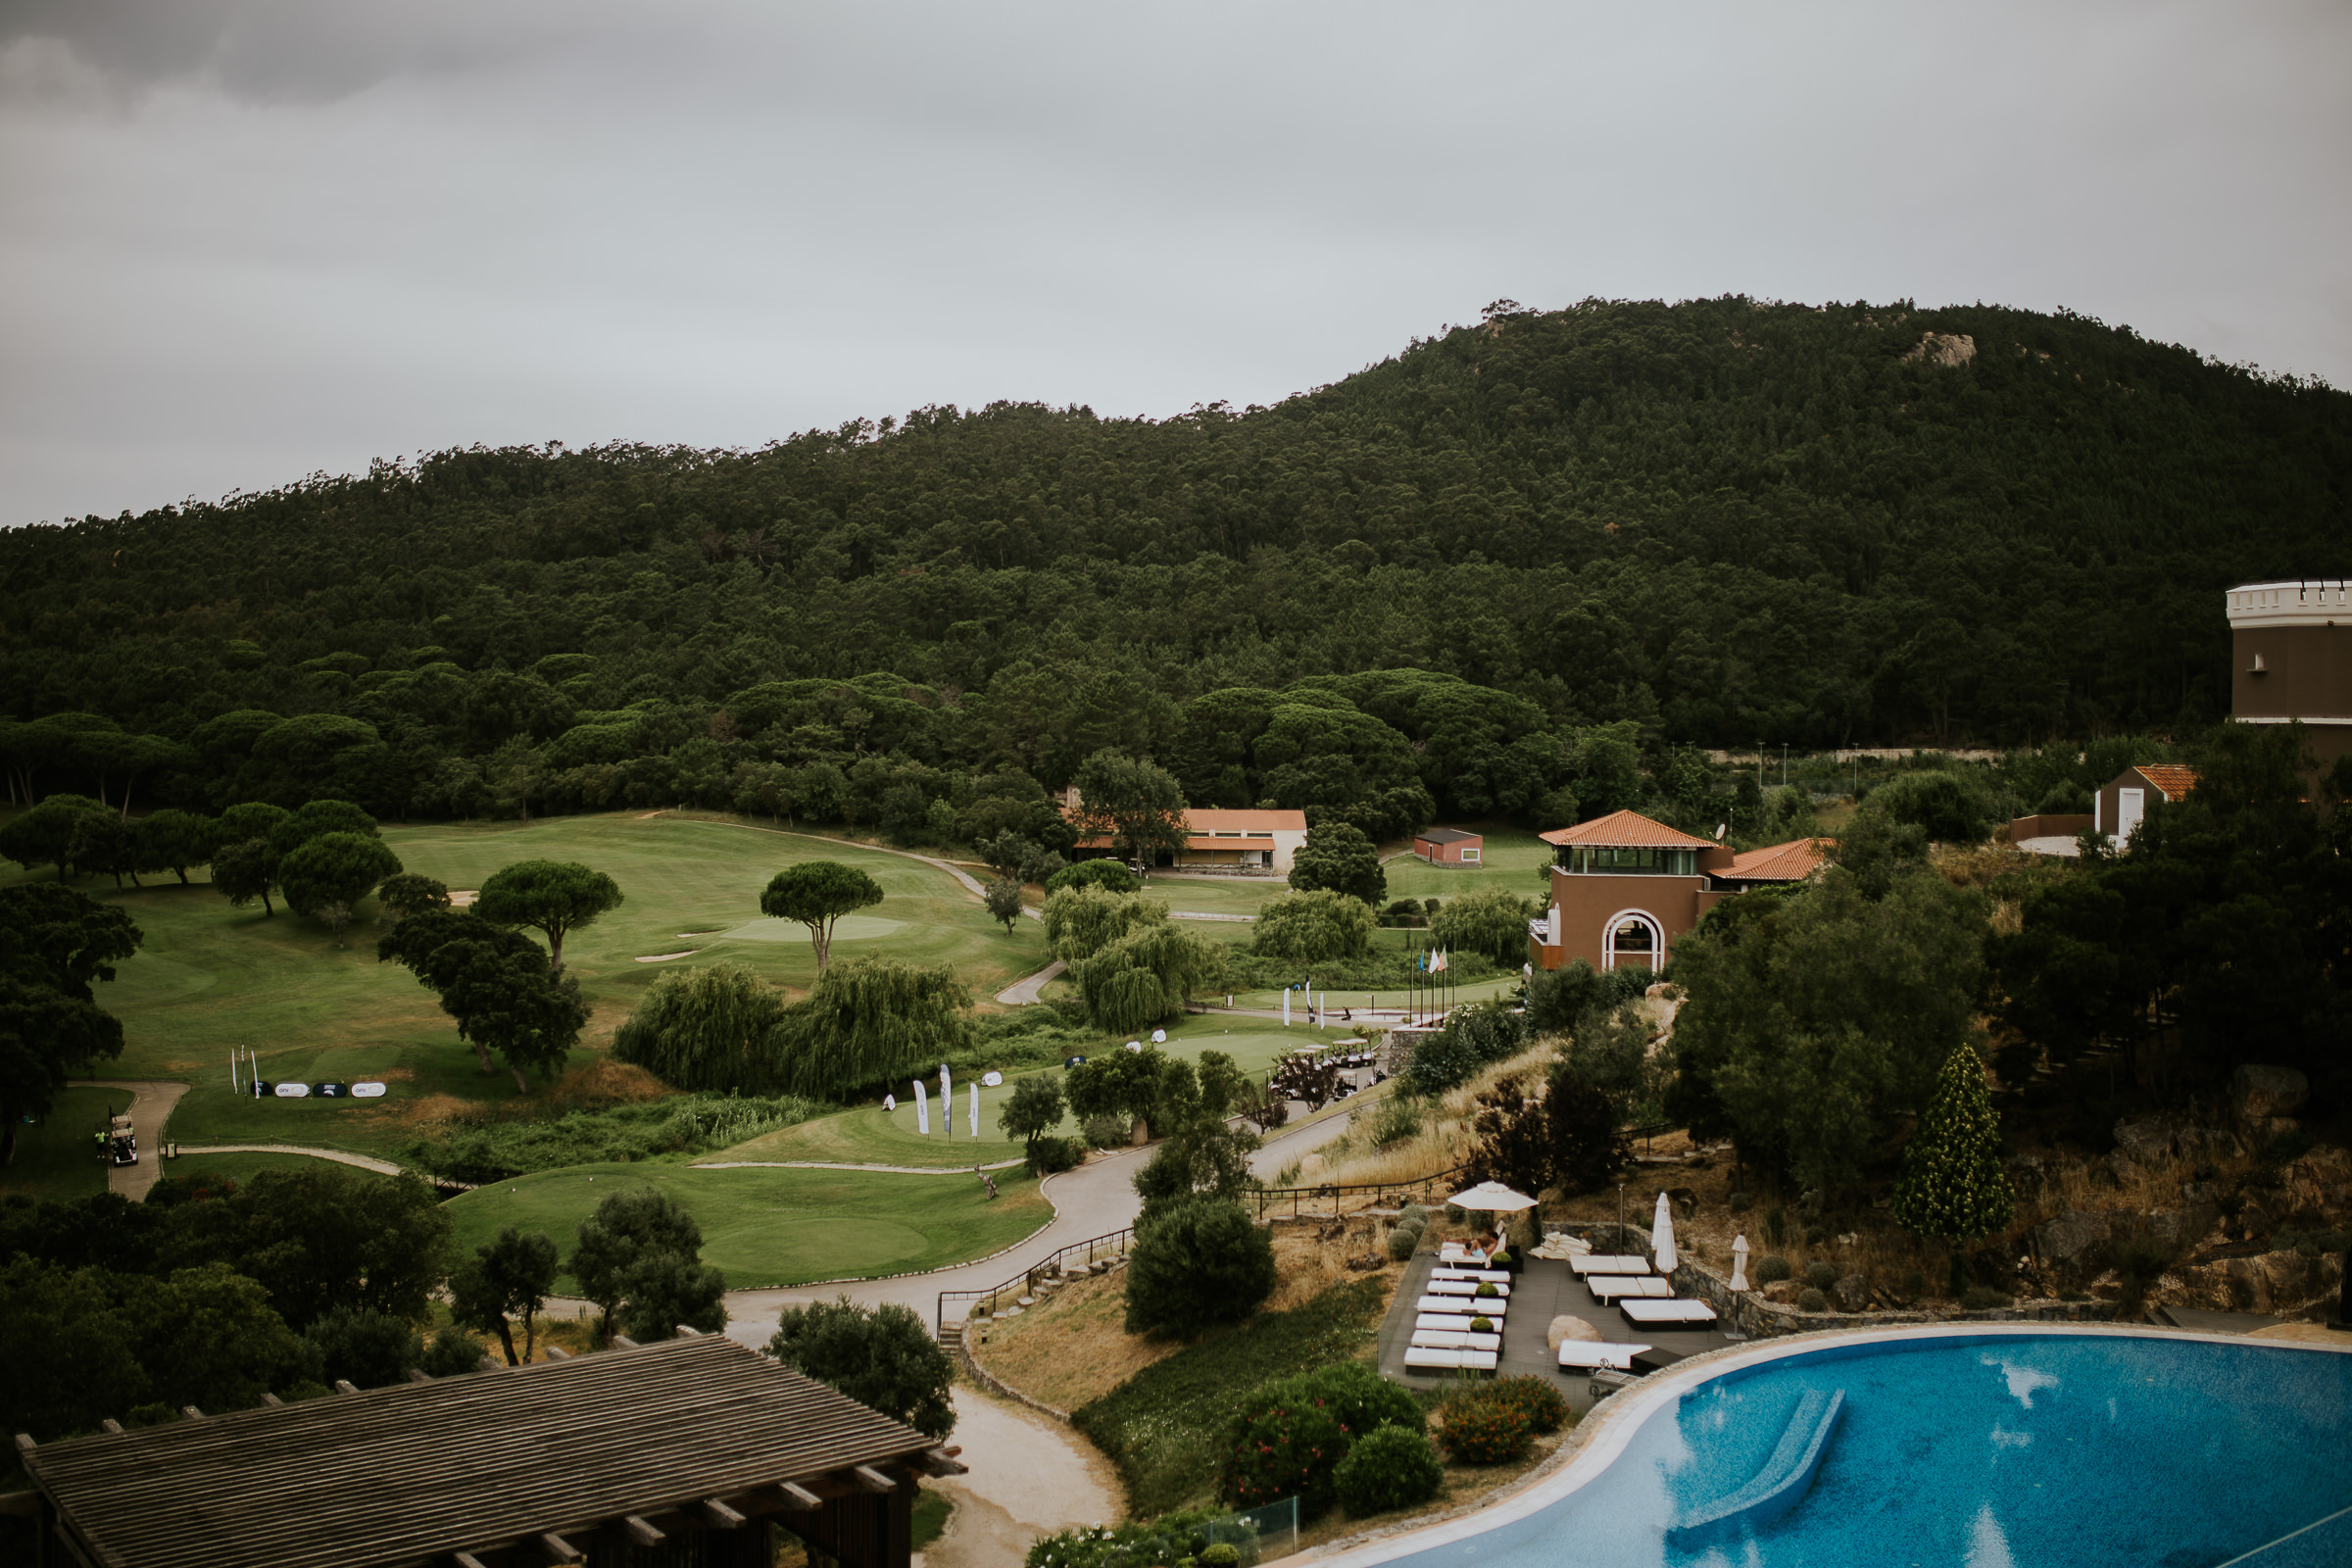 Landscape of a golf resort in Portugal surrounded by a forest